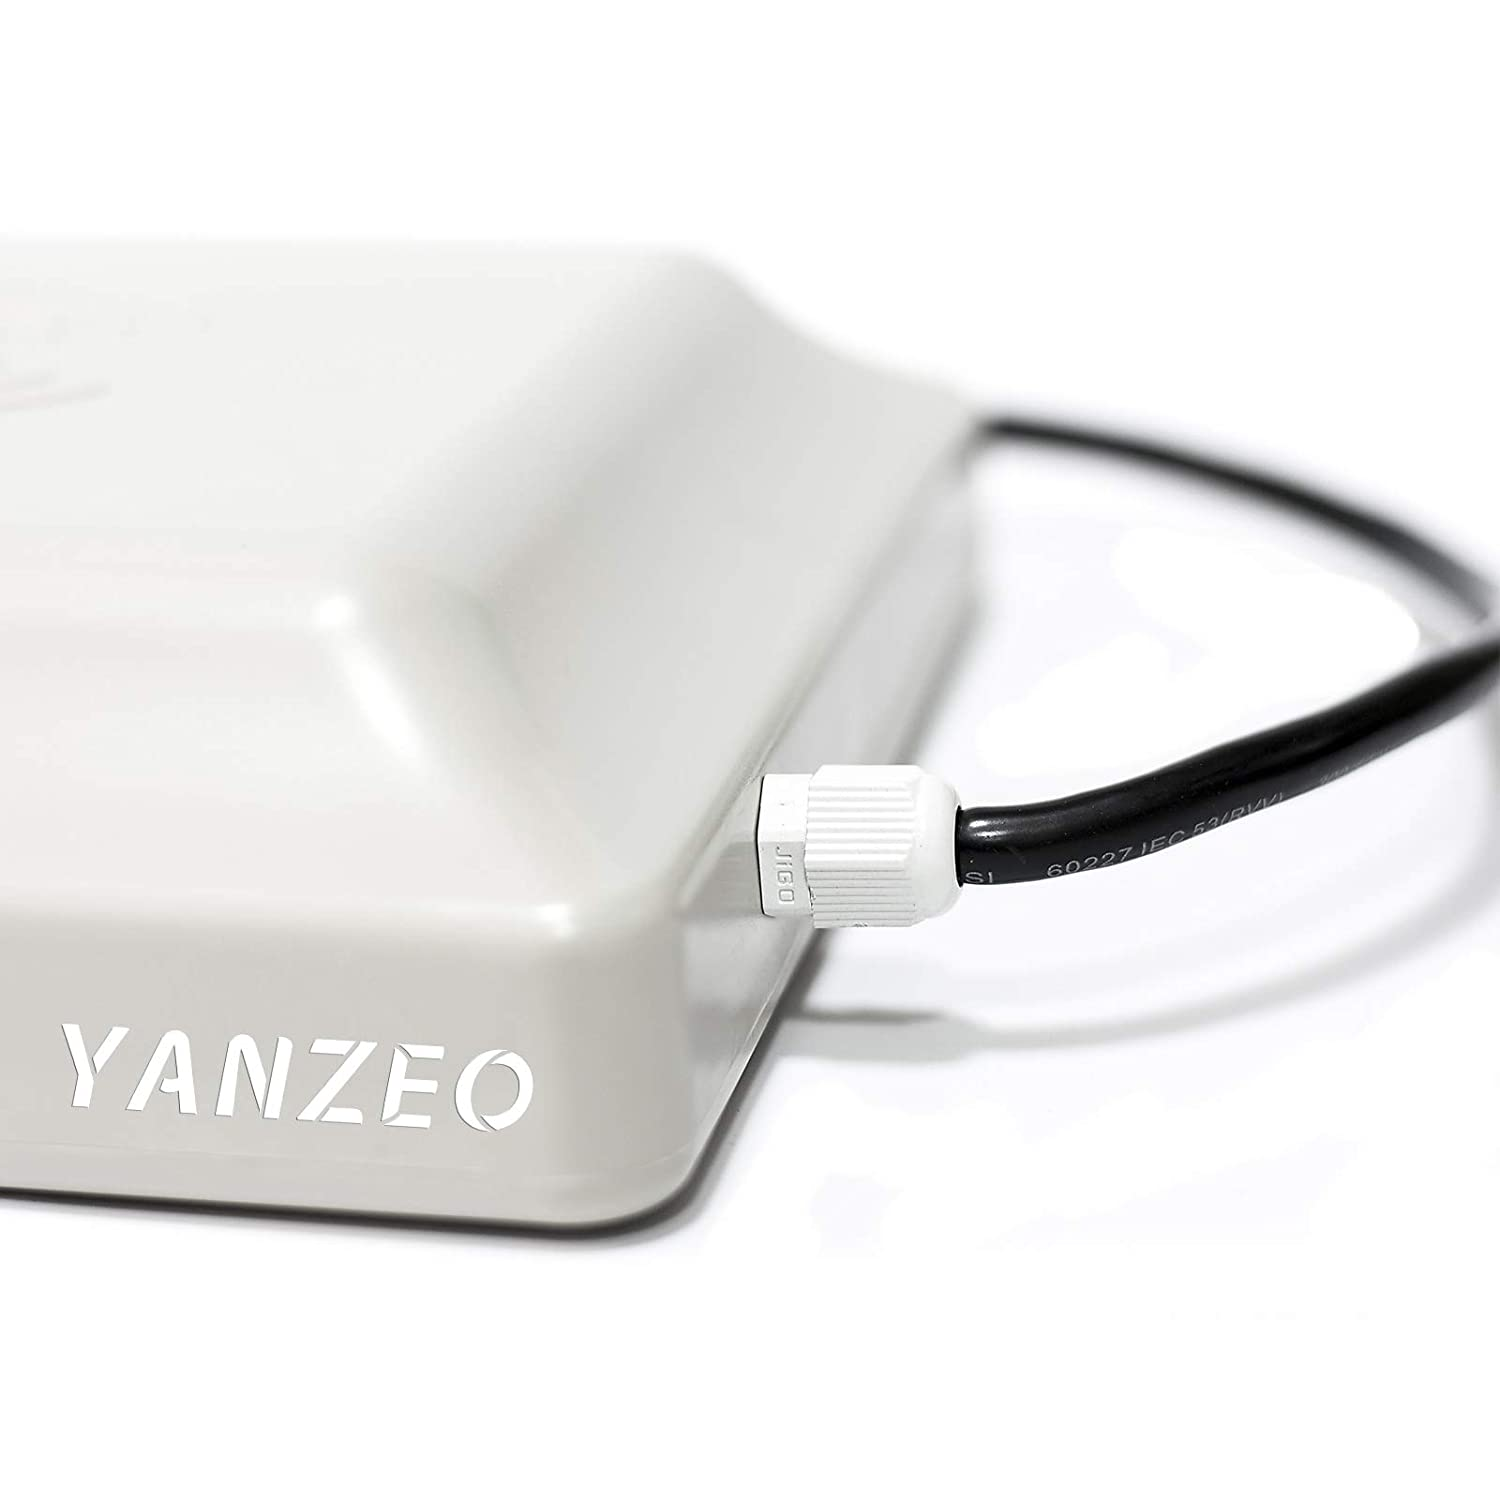 Yanzeo SR681 UHF RFID Reader 6m Long Range Outdoor IP67 8dbi Antenna RS232//RS485//Wiegand Output UHF Integrated Reader